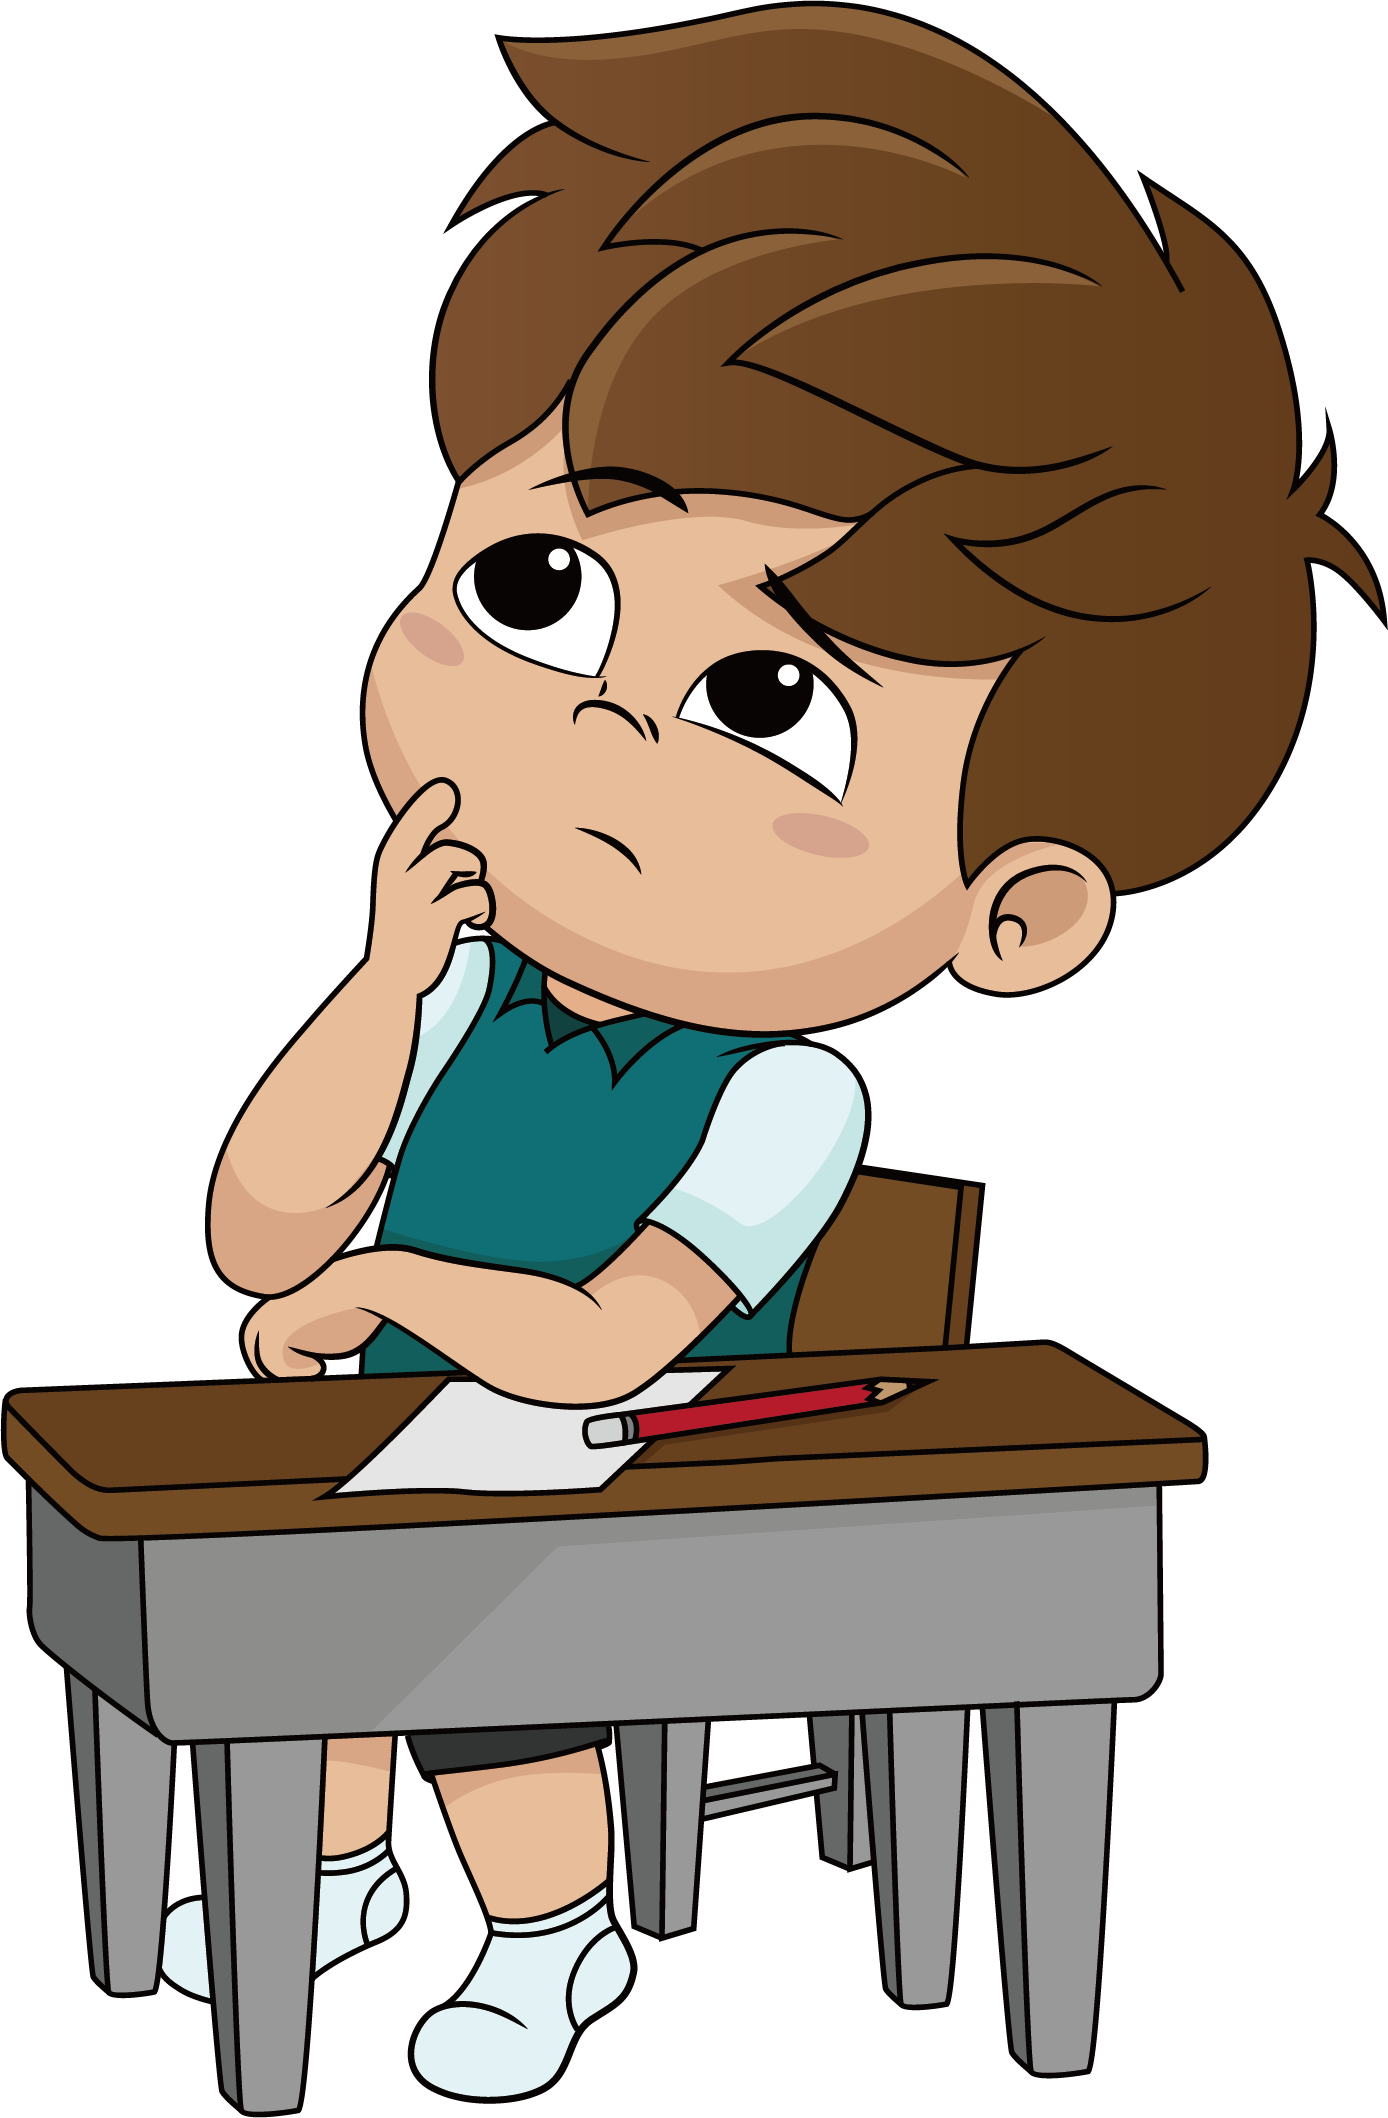 Animation vector thinking. Thought cartoon illustration characters